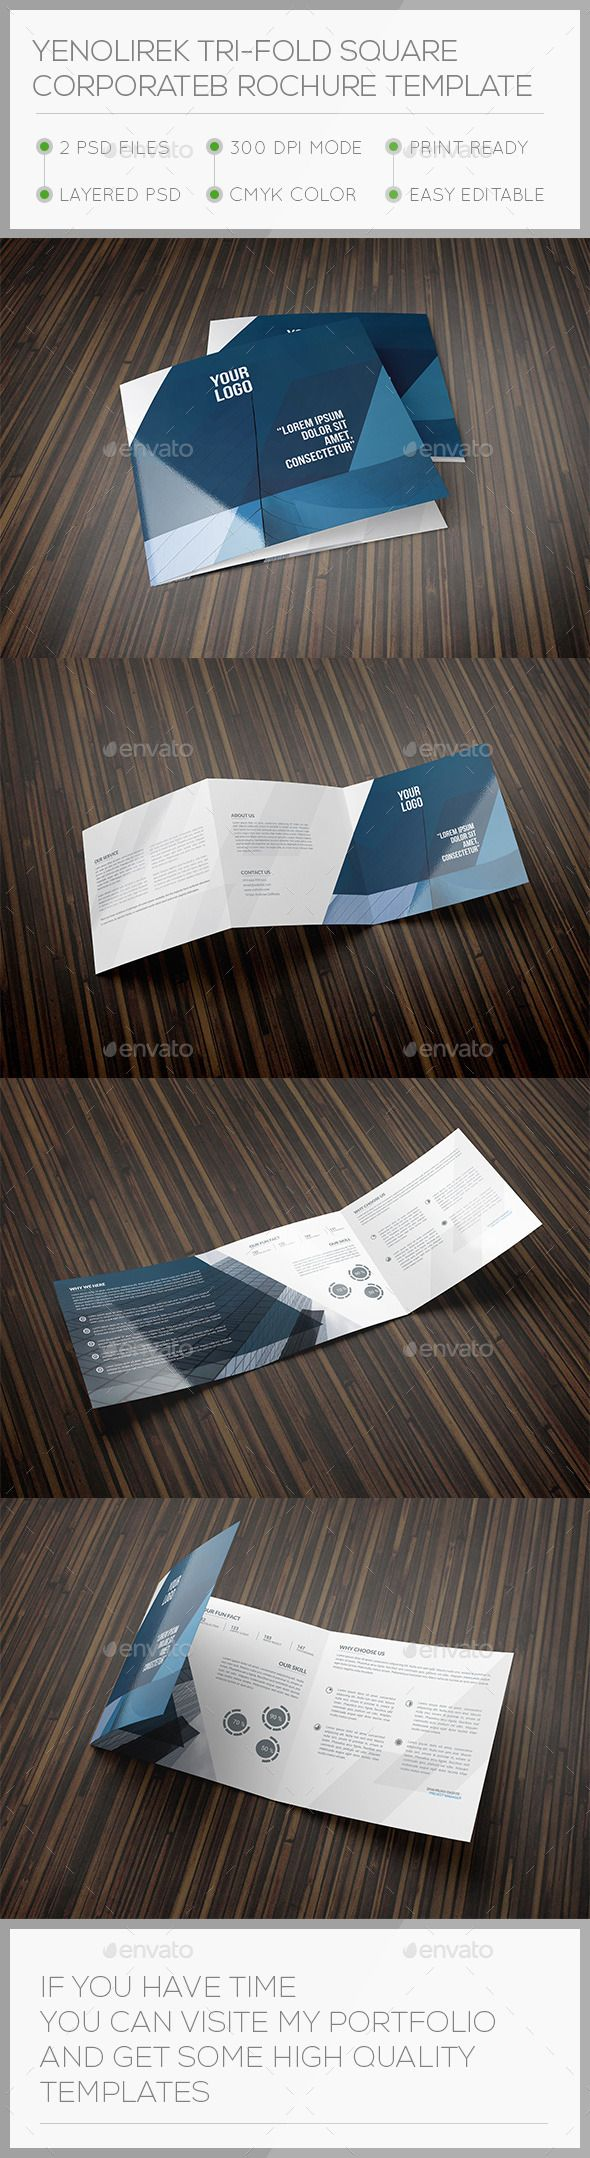 104 best tri fold images on pinterest advertising colours and yenolirek square trifold brochure template magicingreecefo Image collections